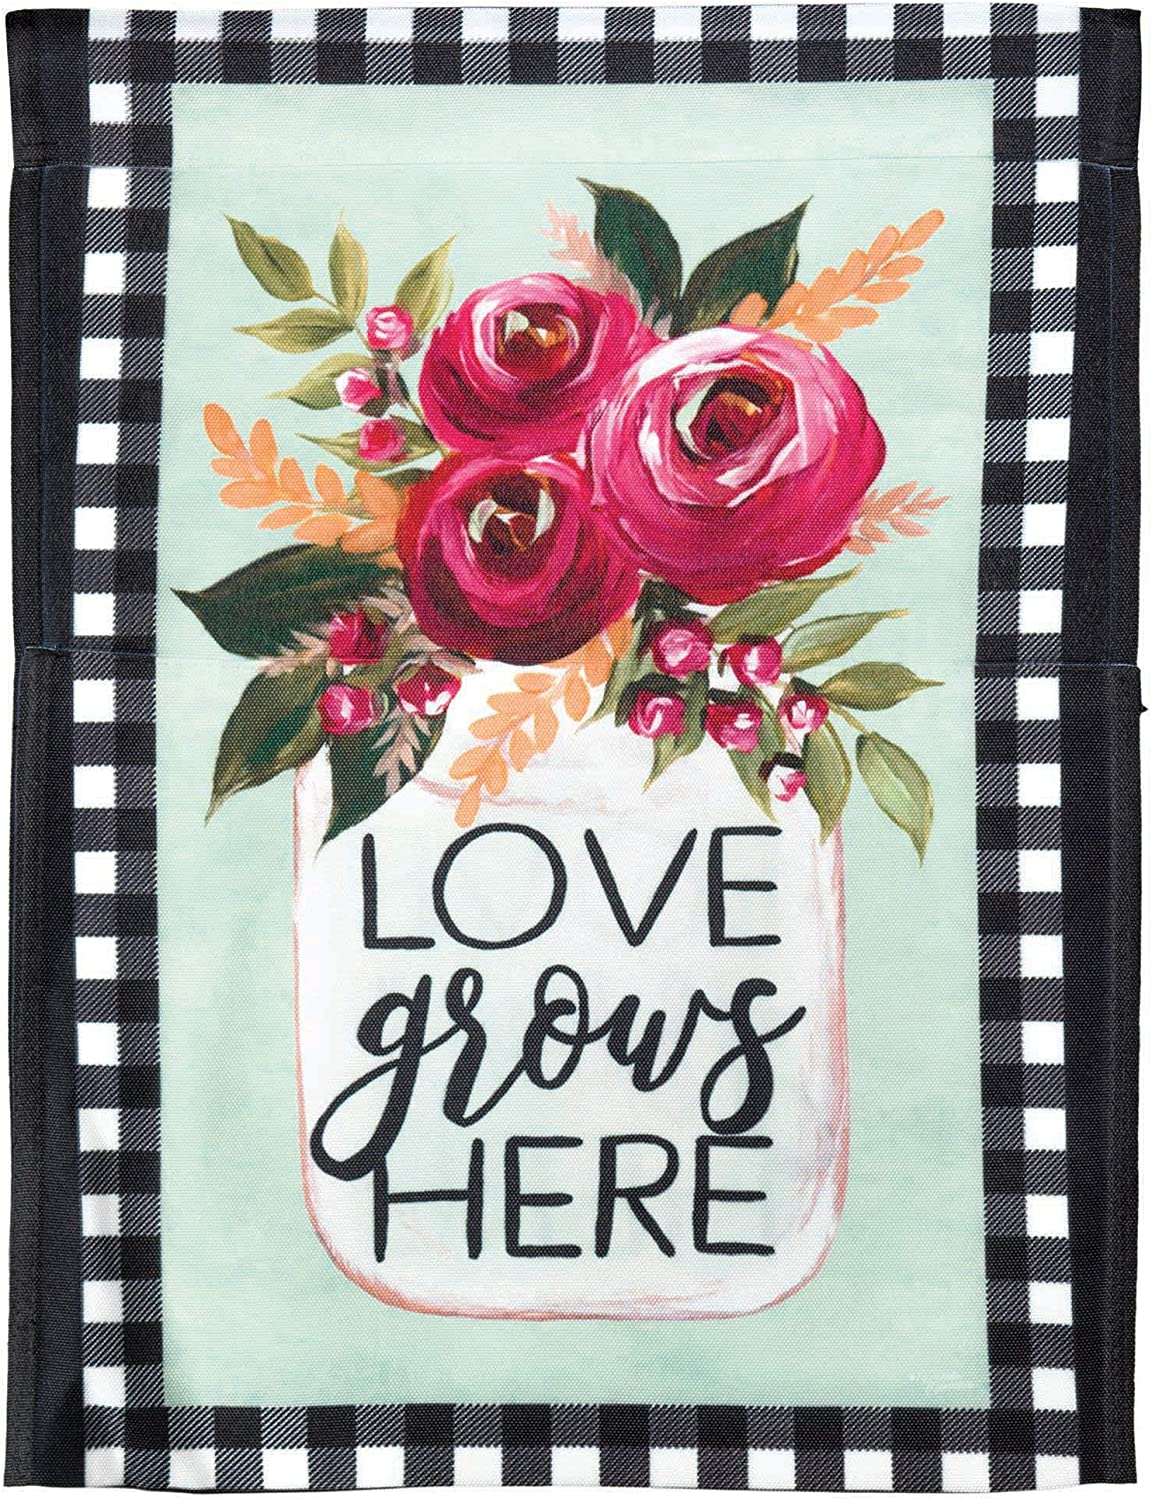 Love Grows Here Pink Rose 8 x 18.3 Large Polyester Outdoor Hanging Garden Flag